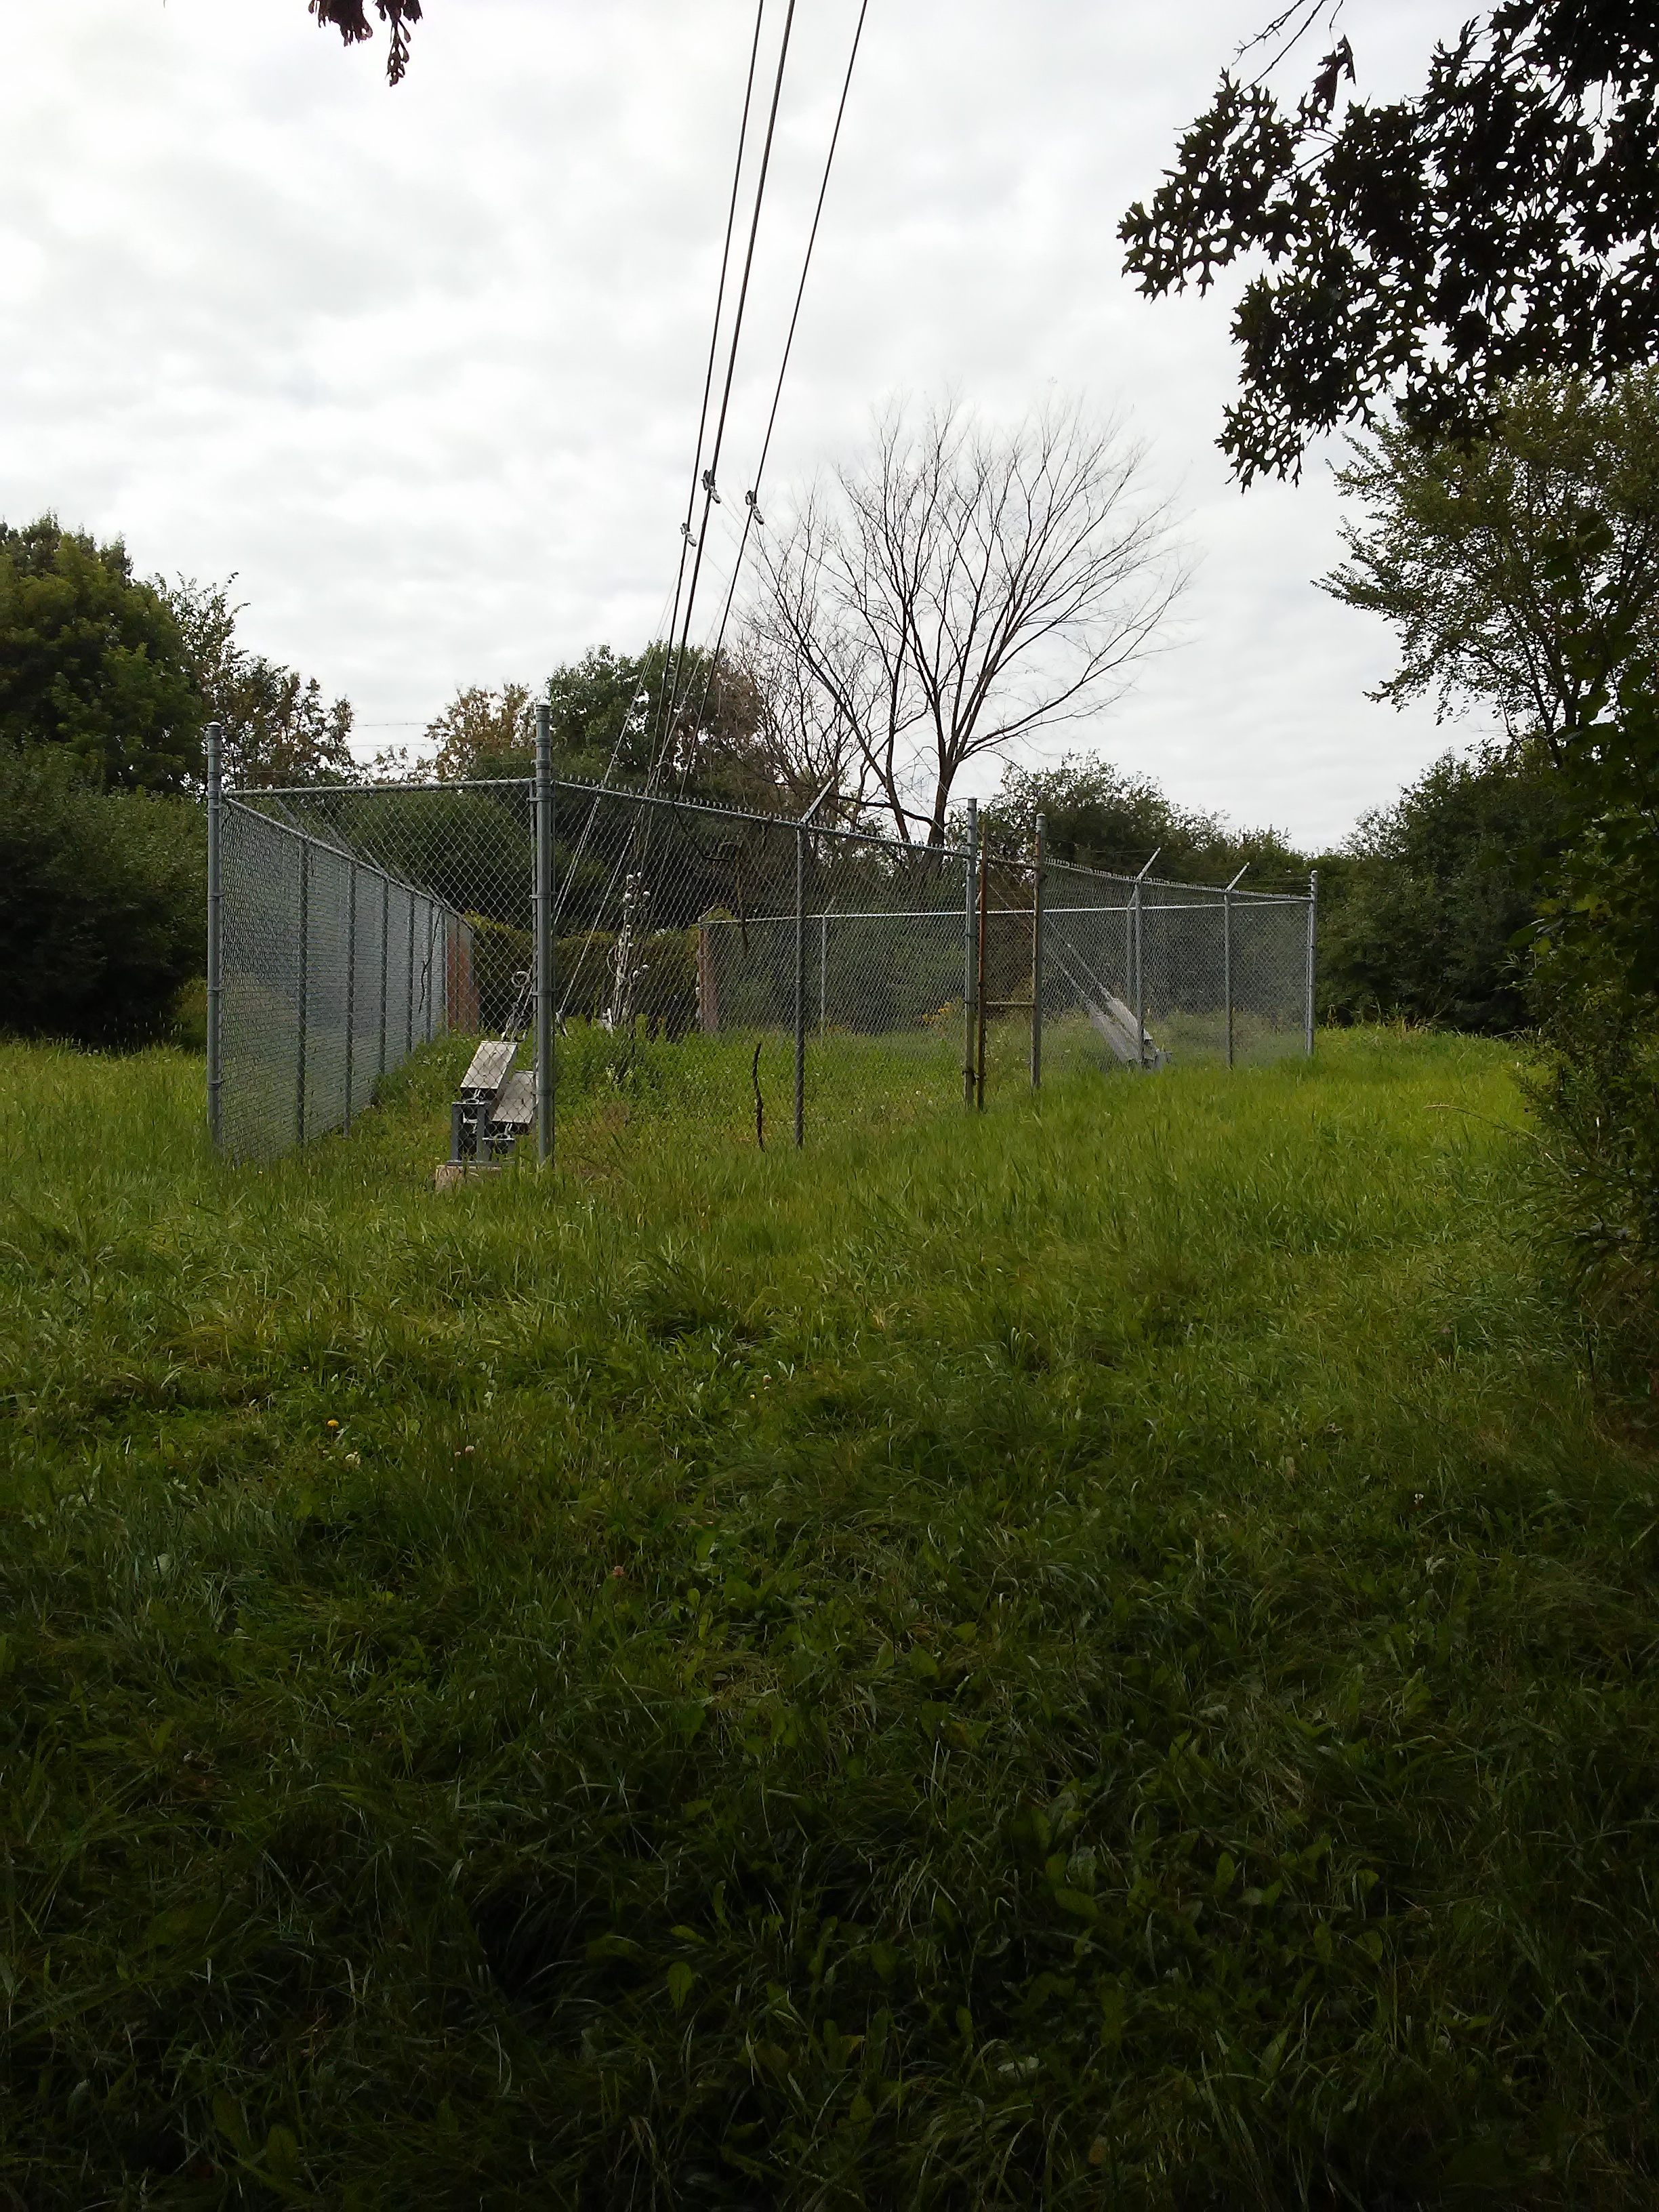 fenced in area with cables and grass in foreground